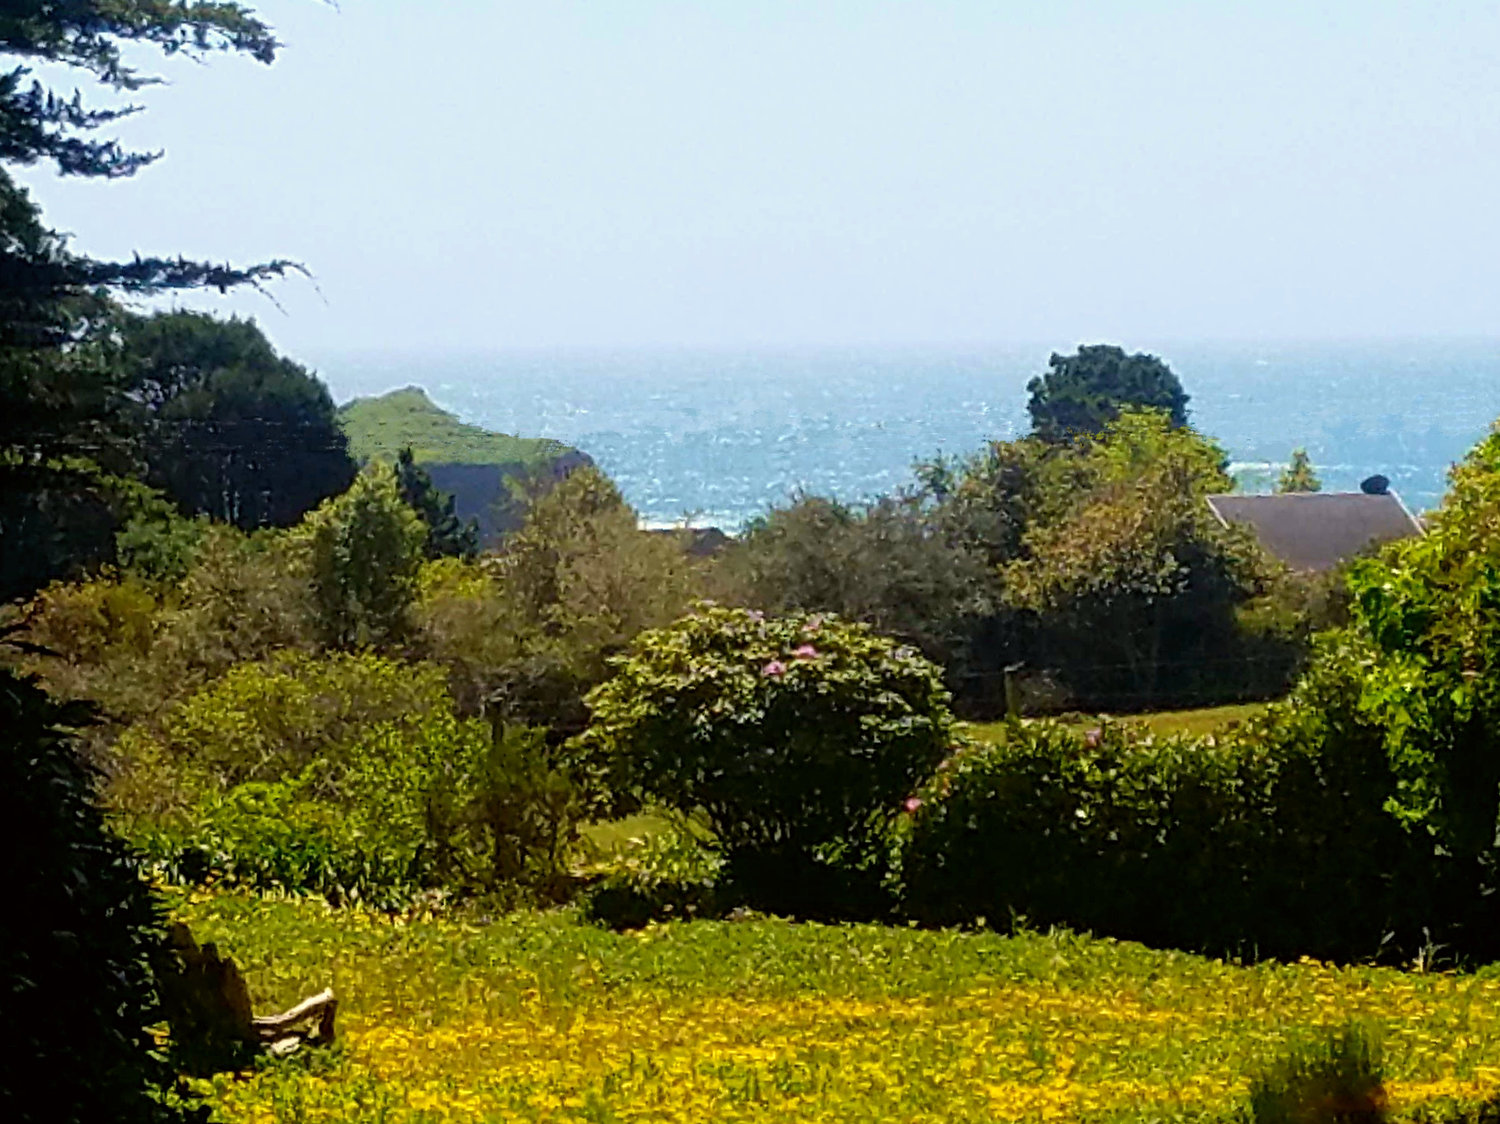 A view of the Pacific Ocean from the Pinewood room